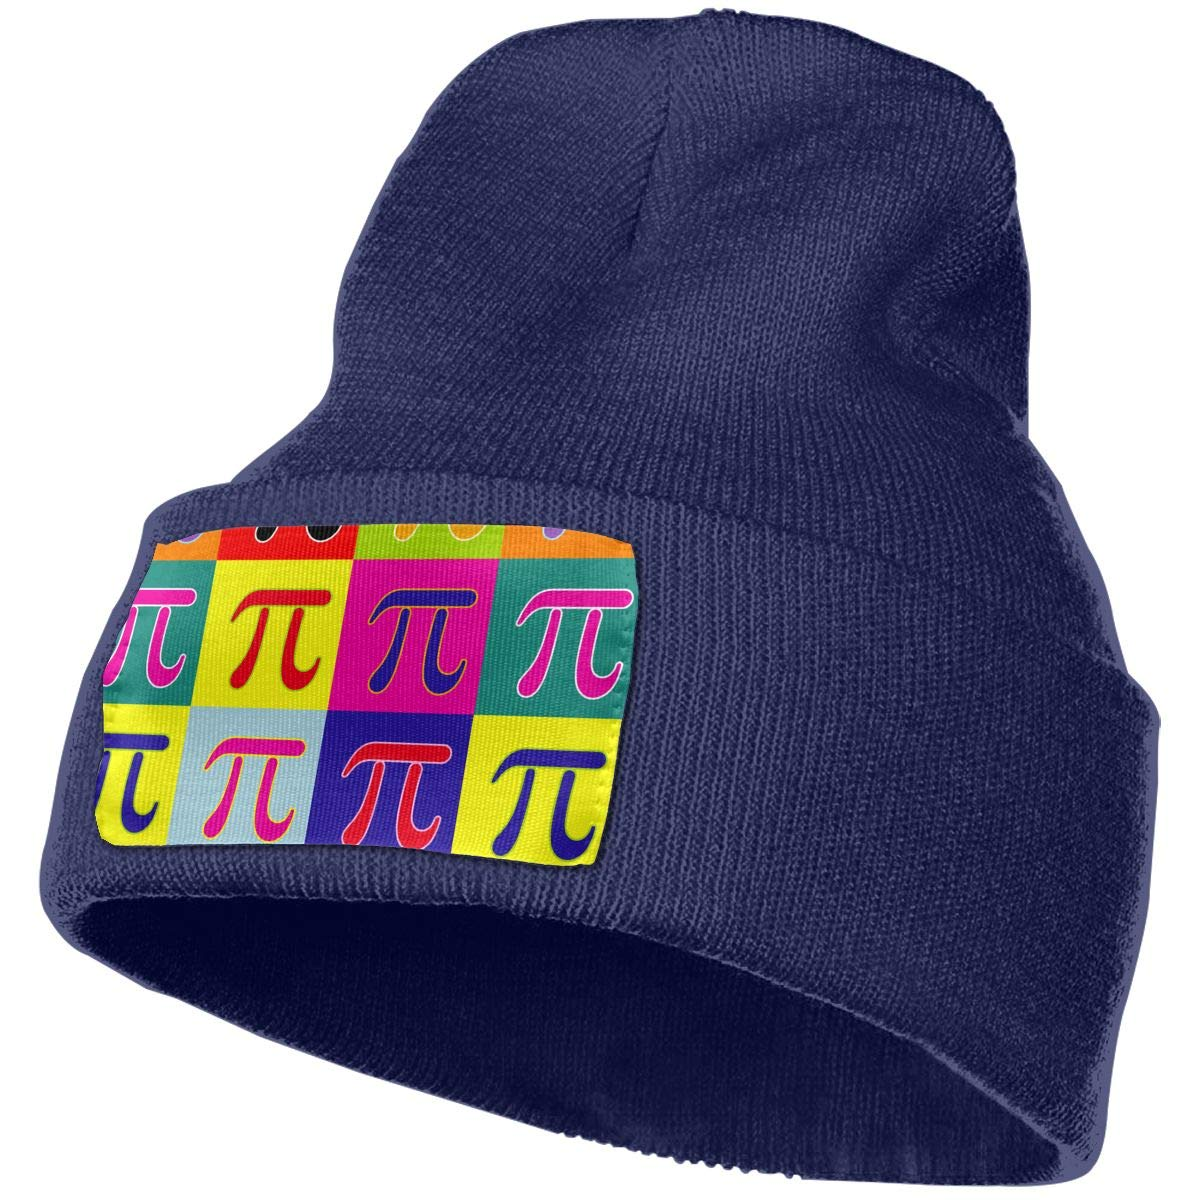 Colors Pi Square Winter Wool Cap Warm Beanies Knitted Hat